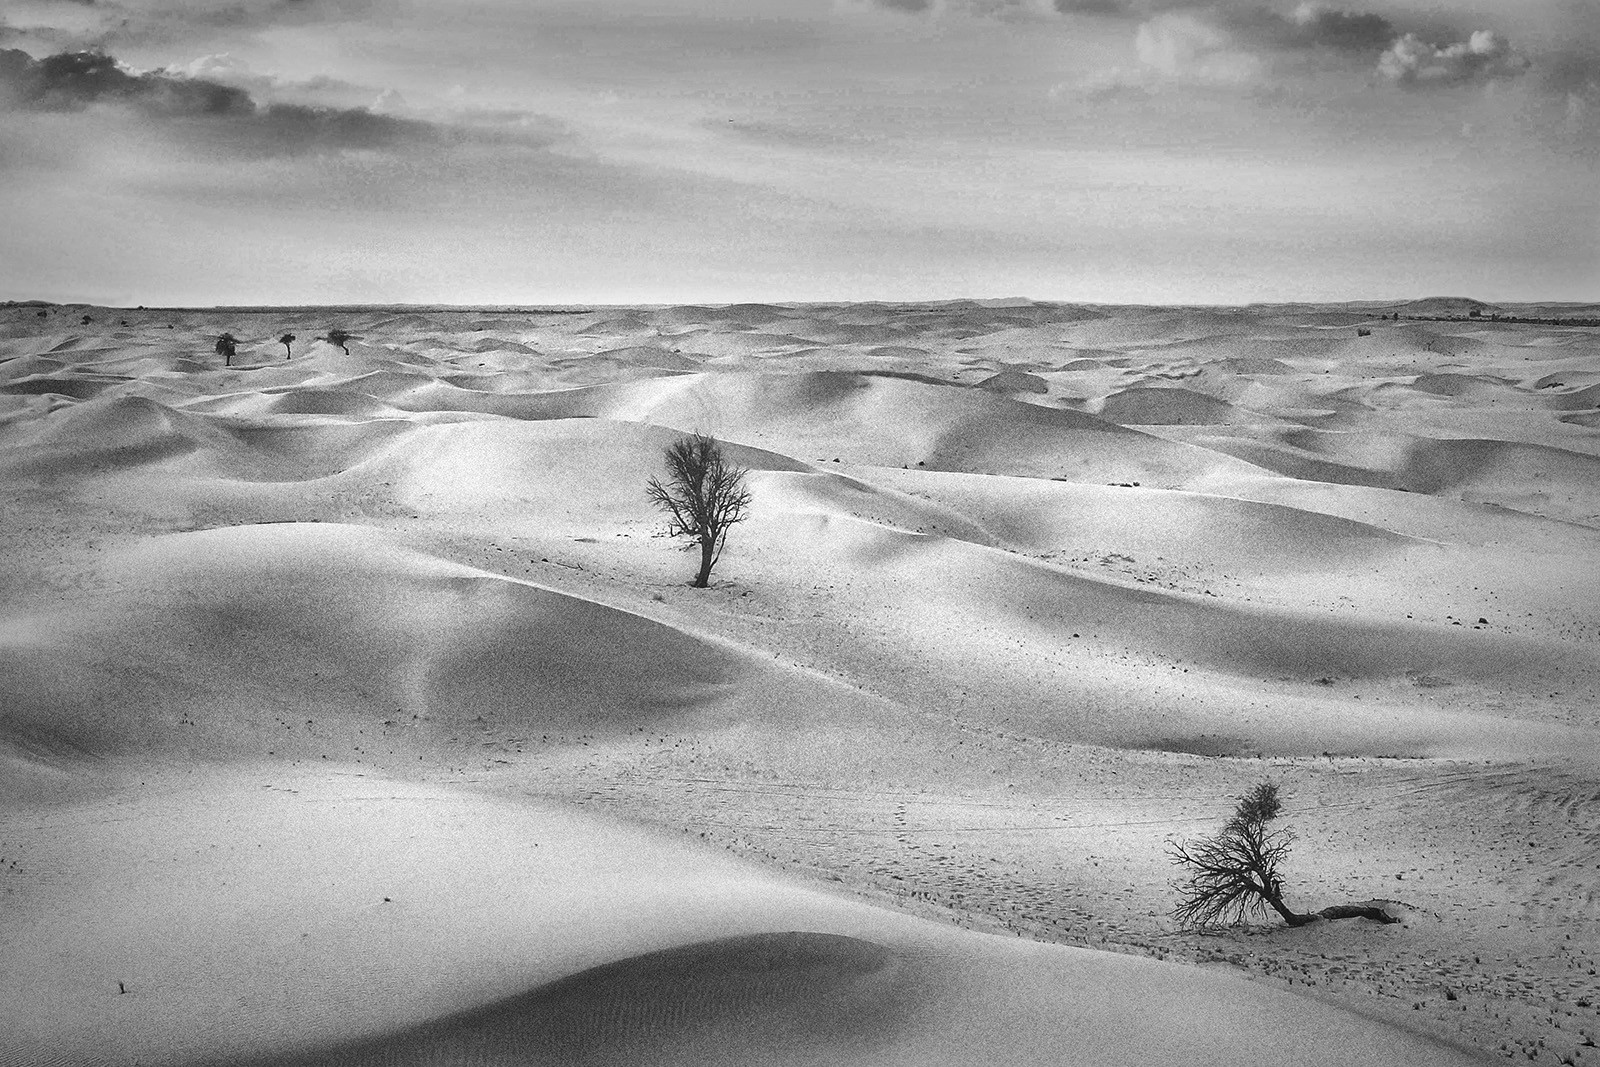 MONO - Waves of Sand by Mary Hill (10 marks)